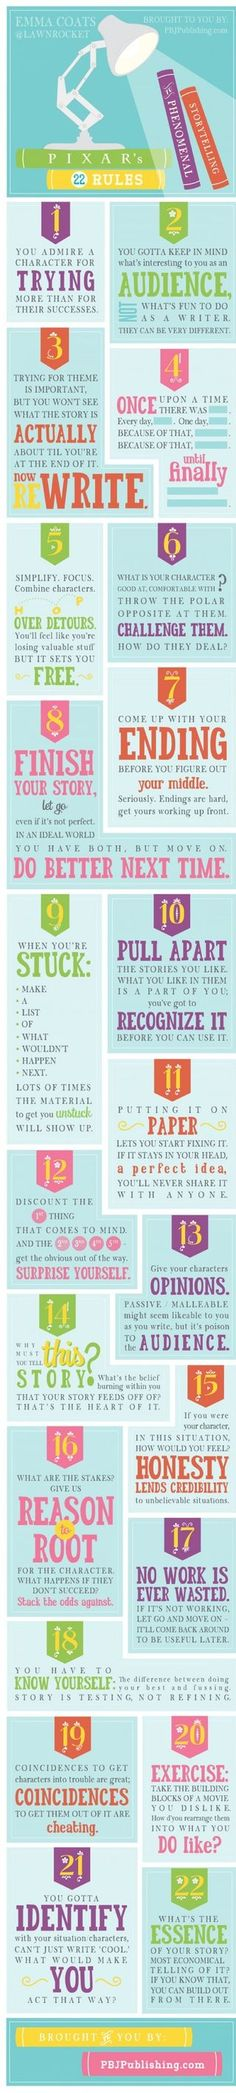 Pixar 22 Rules To Phenomenal Storytelling